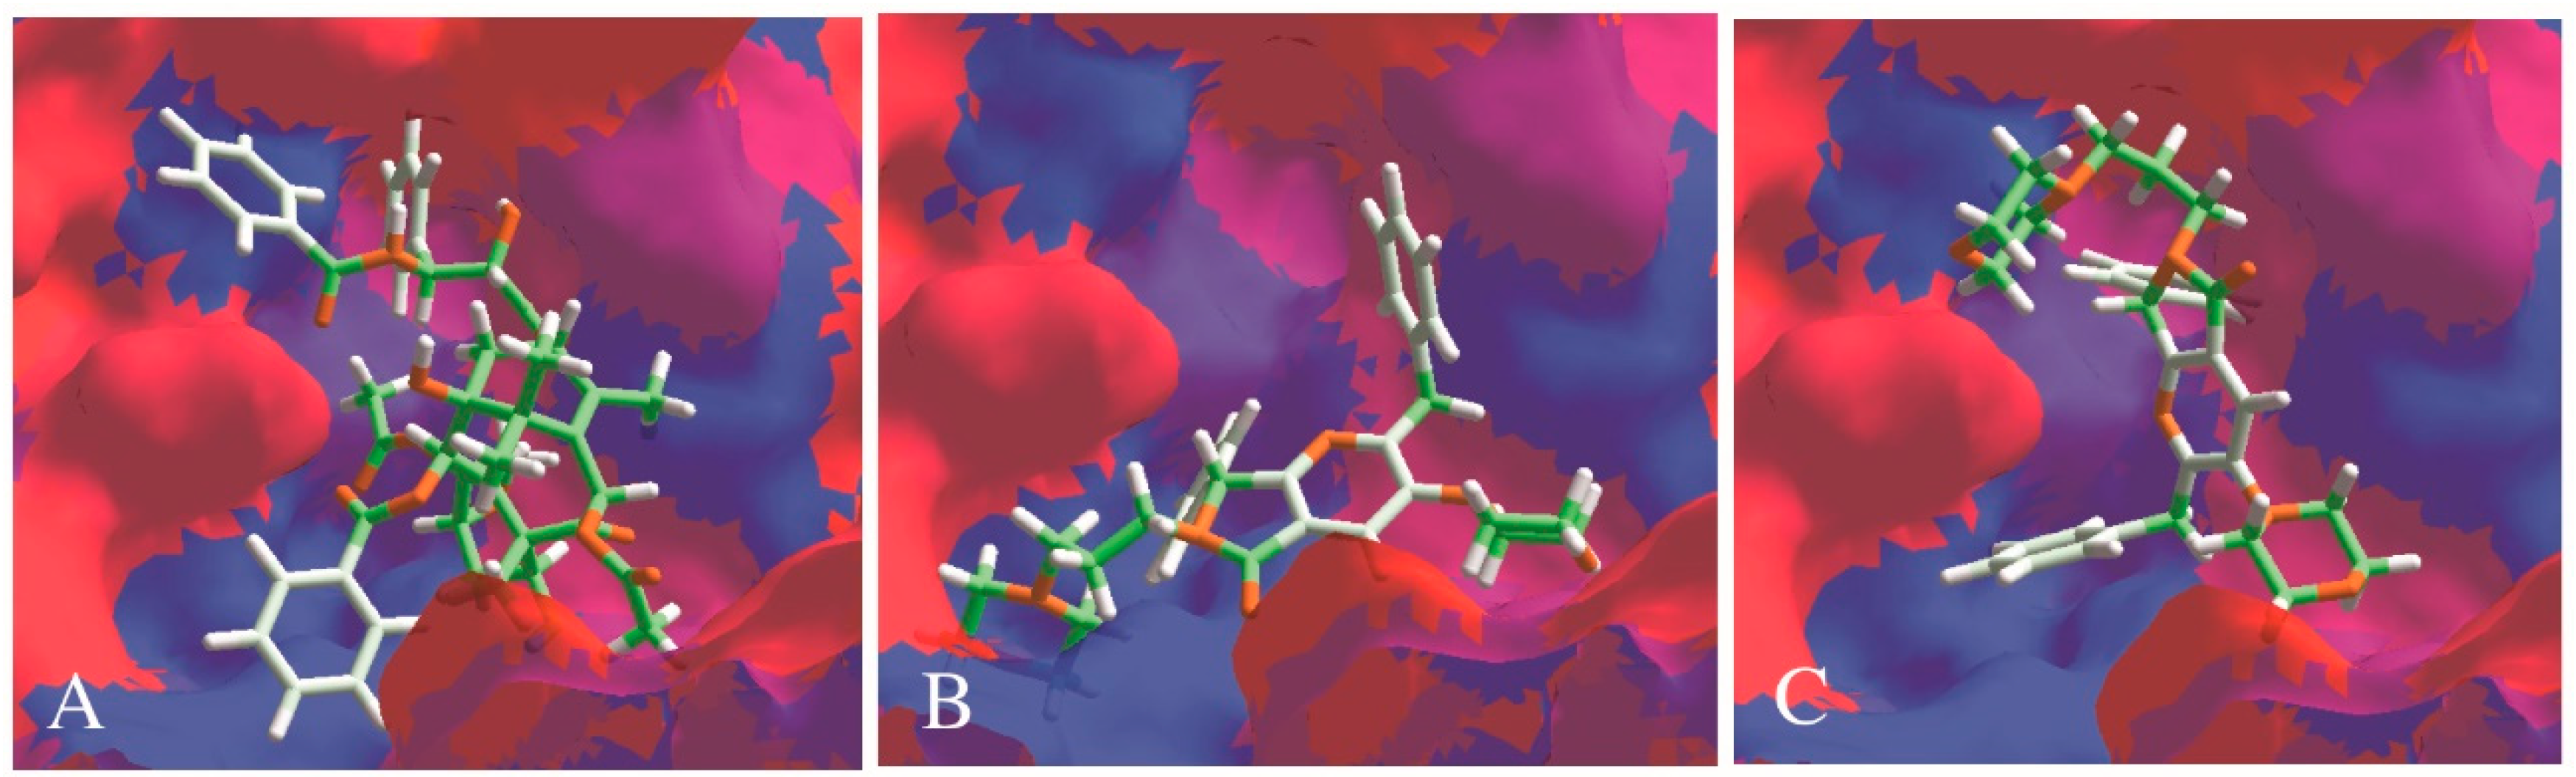 Molecules | Free Full-Text | Synthesis of Pyrrolo[3,4-b]pyridin-5